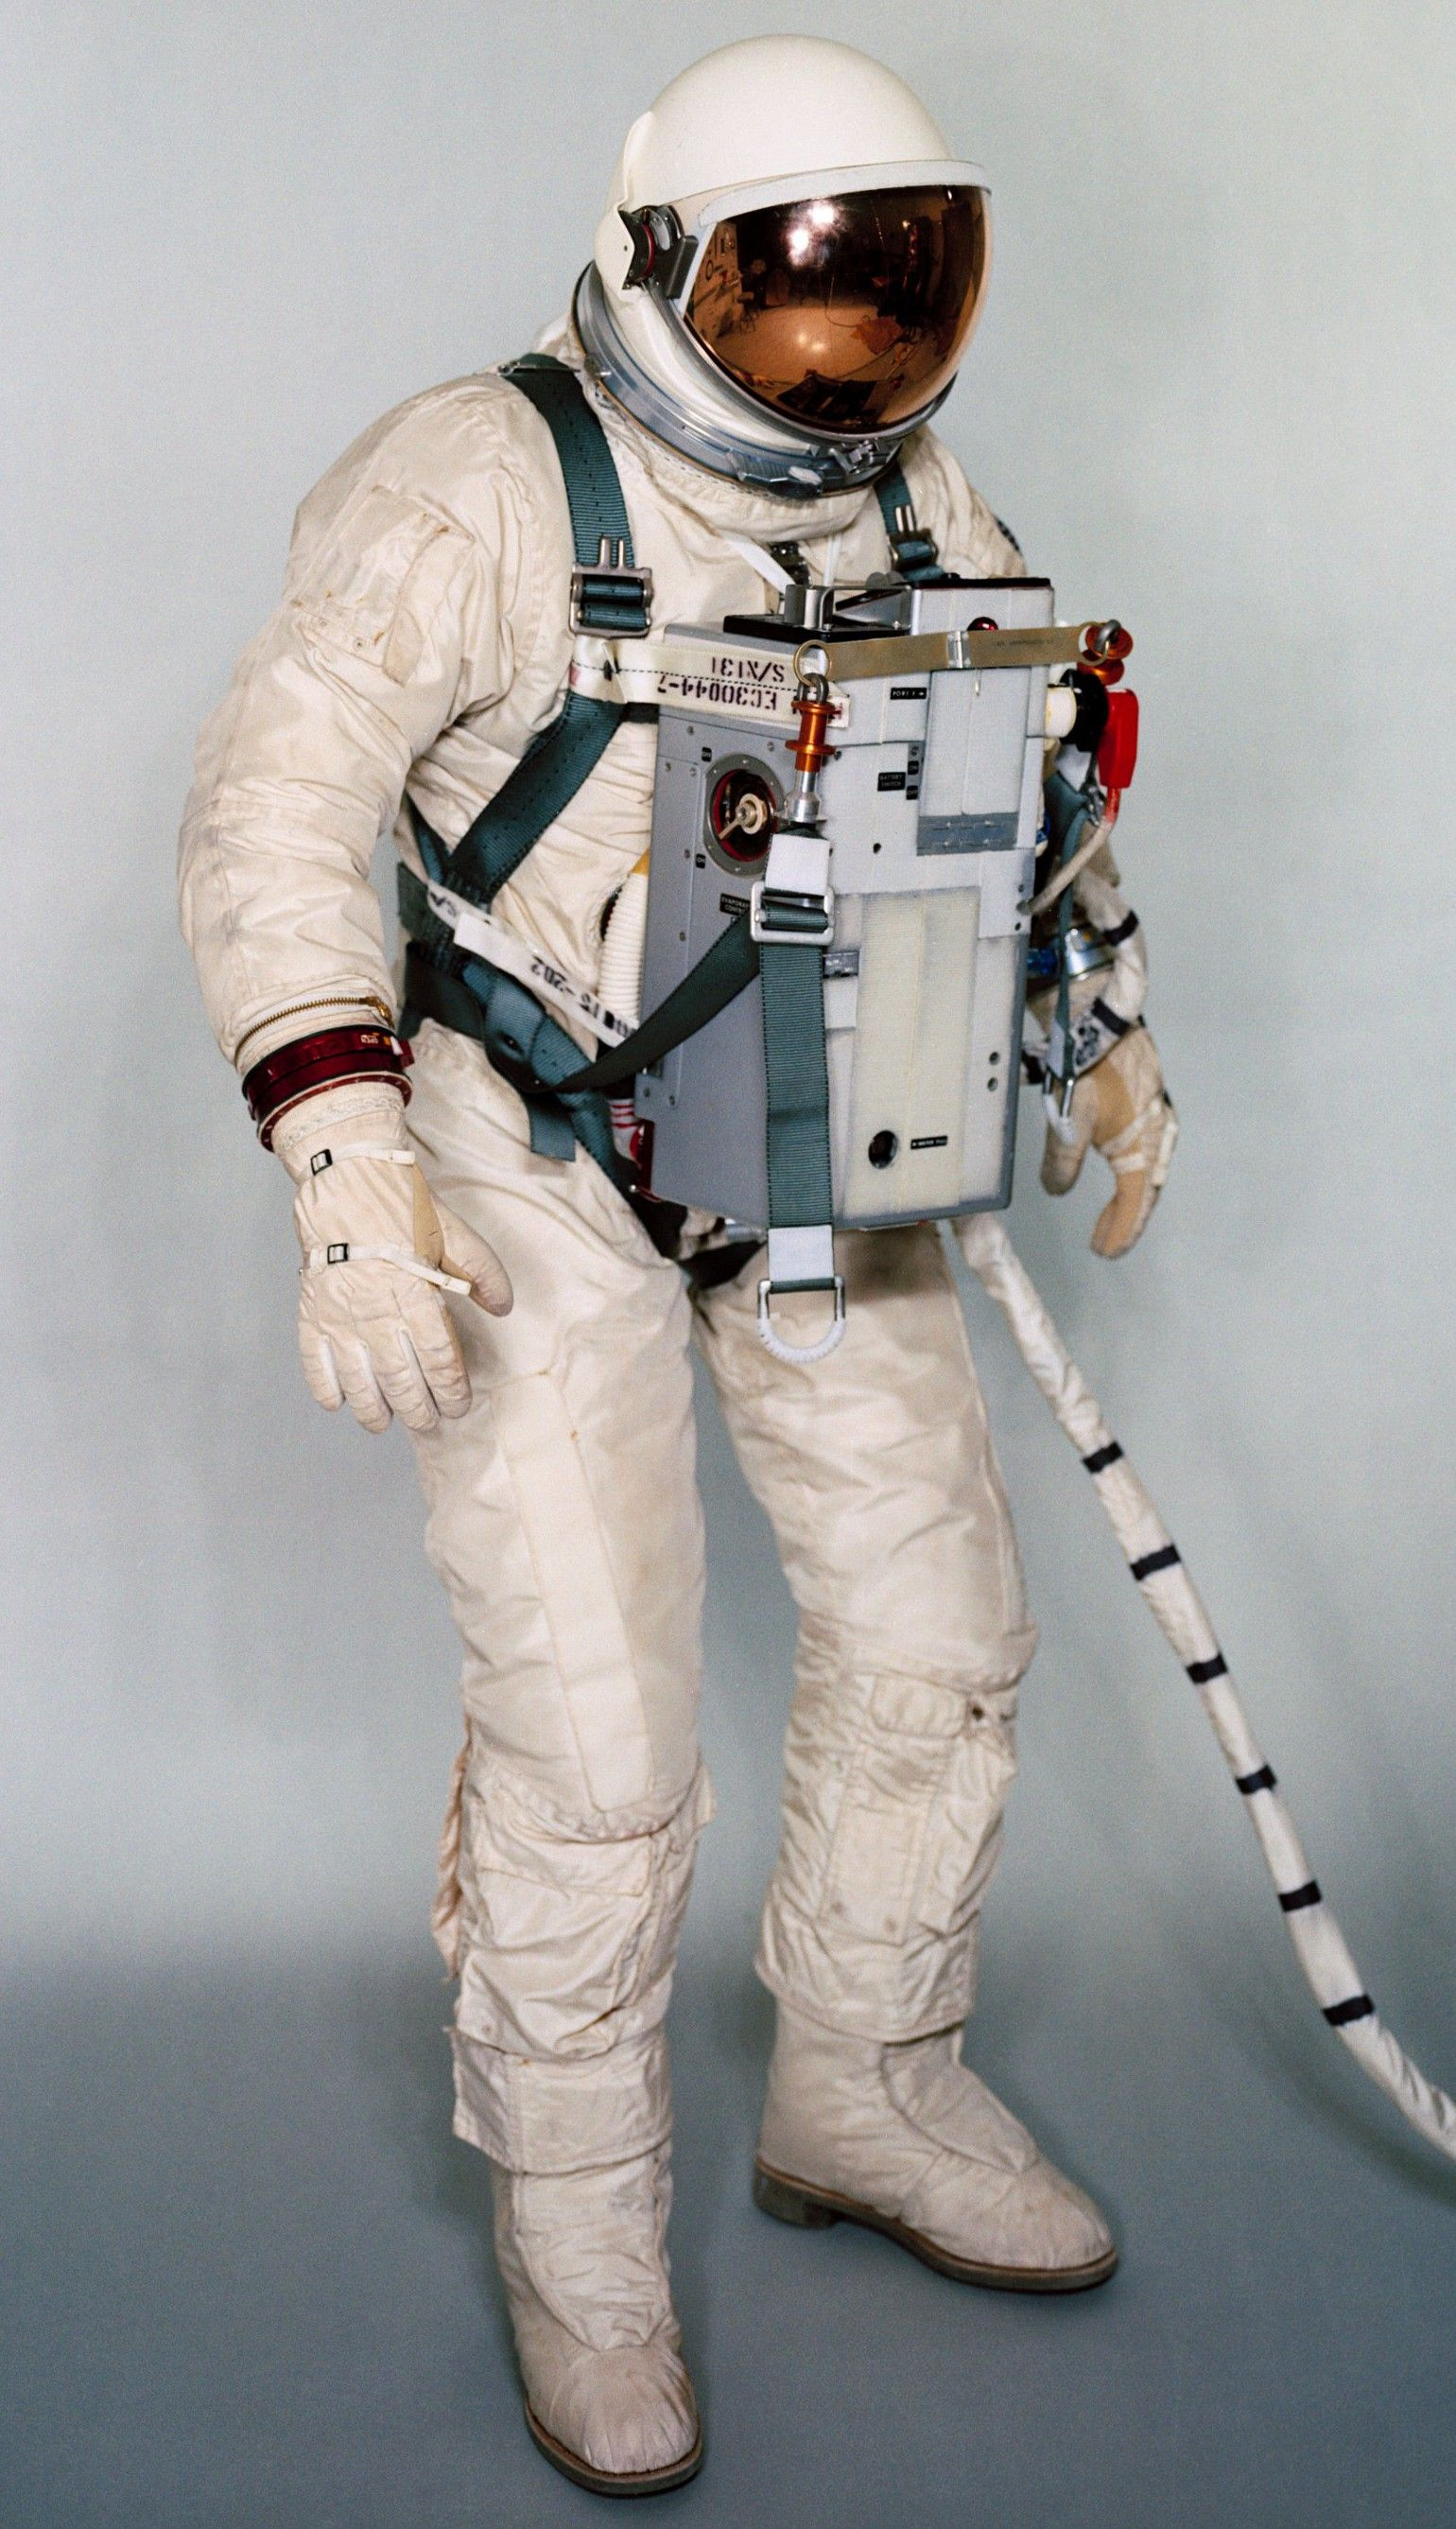 hight resolution of life support system astronaut suit project gemini space girl sci fi characters